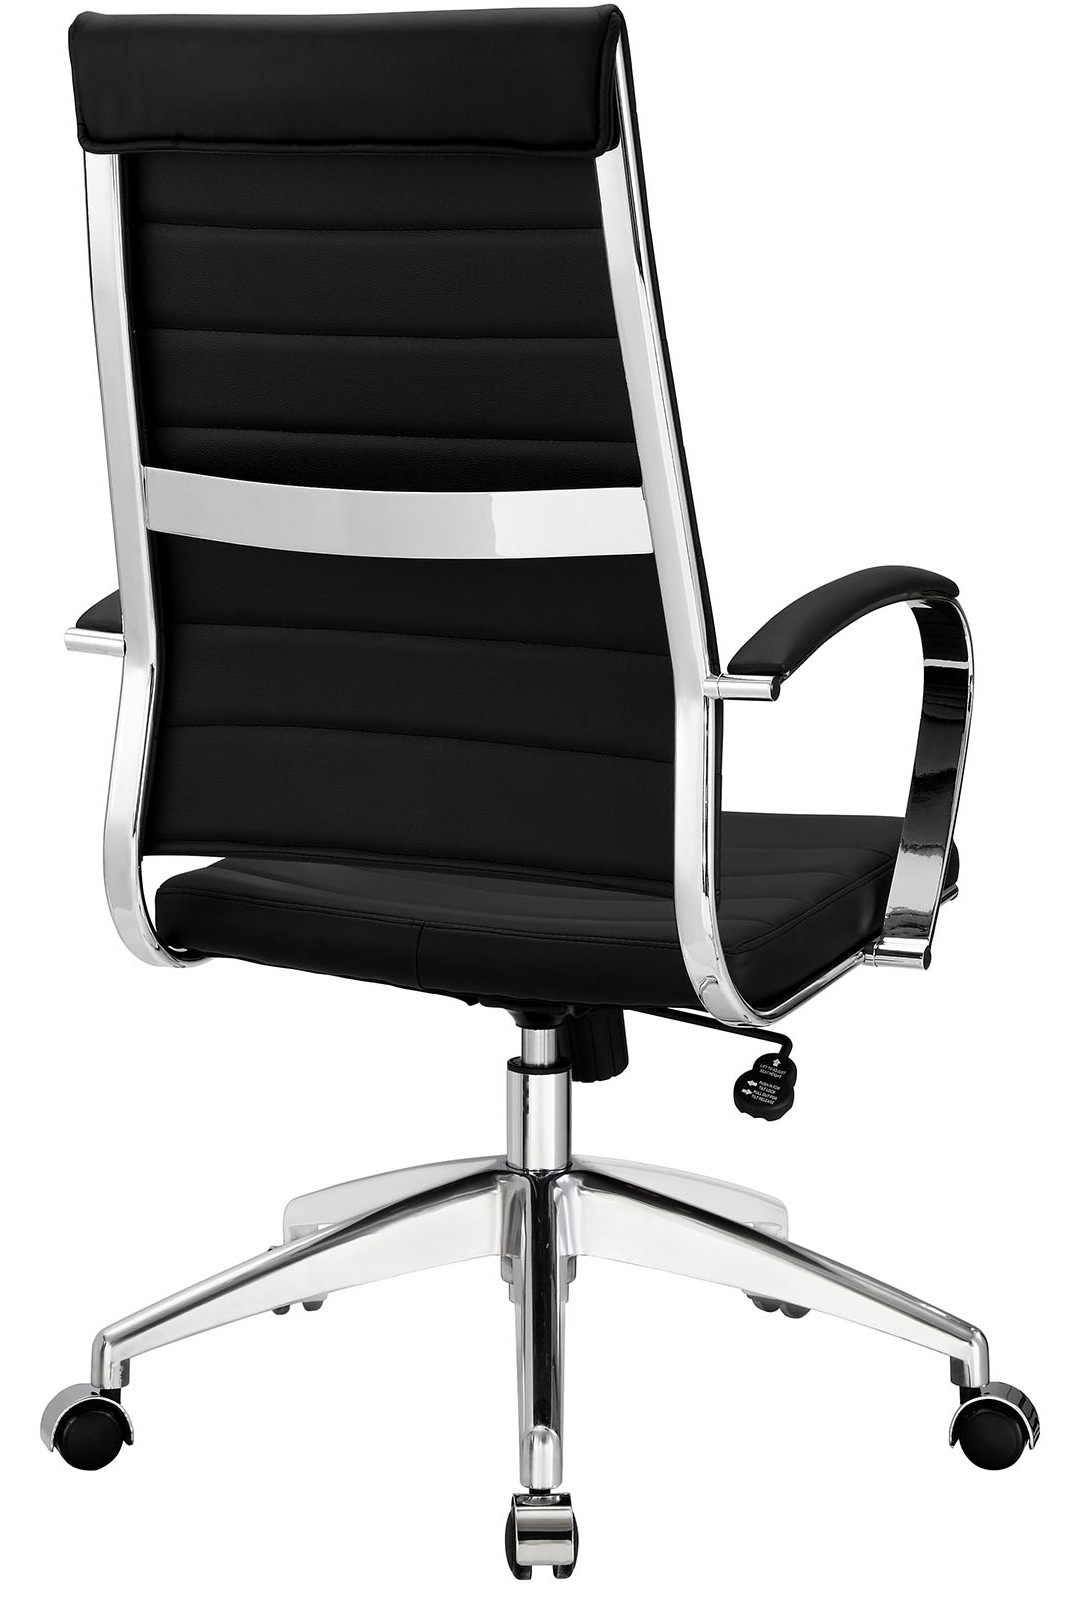 aria-high-back-office-chair-black.jpg